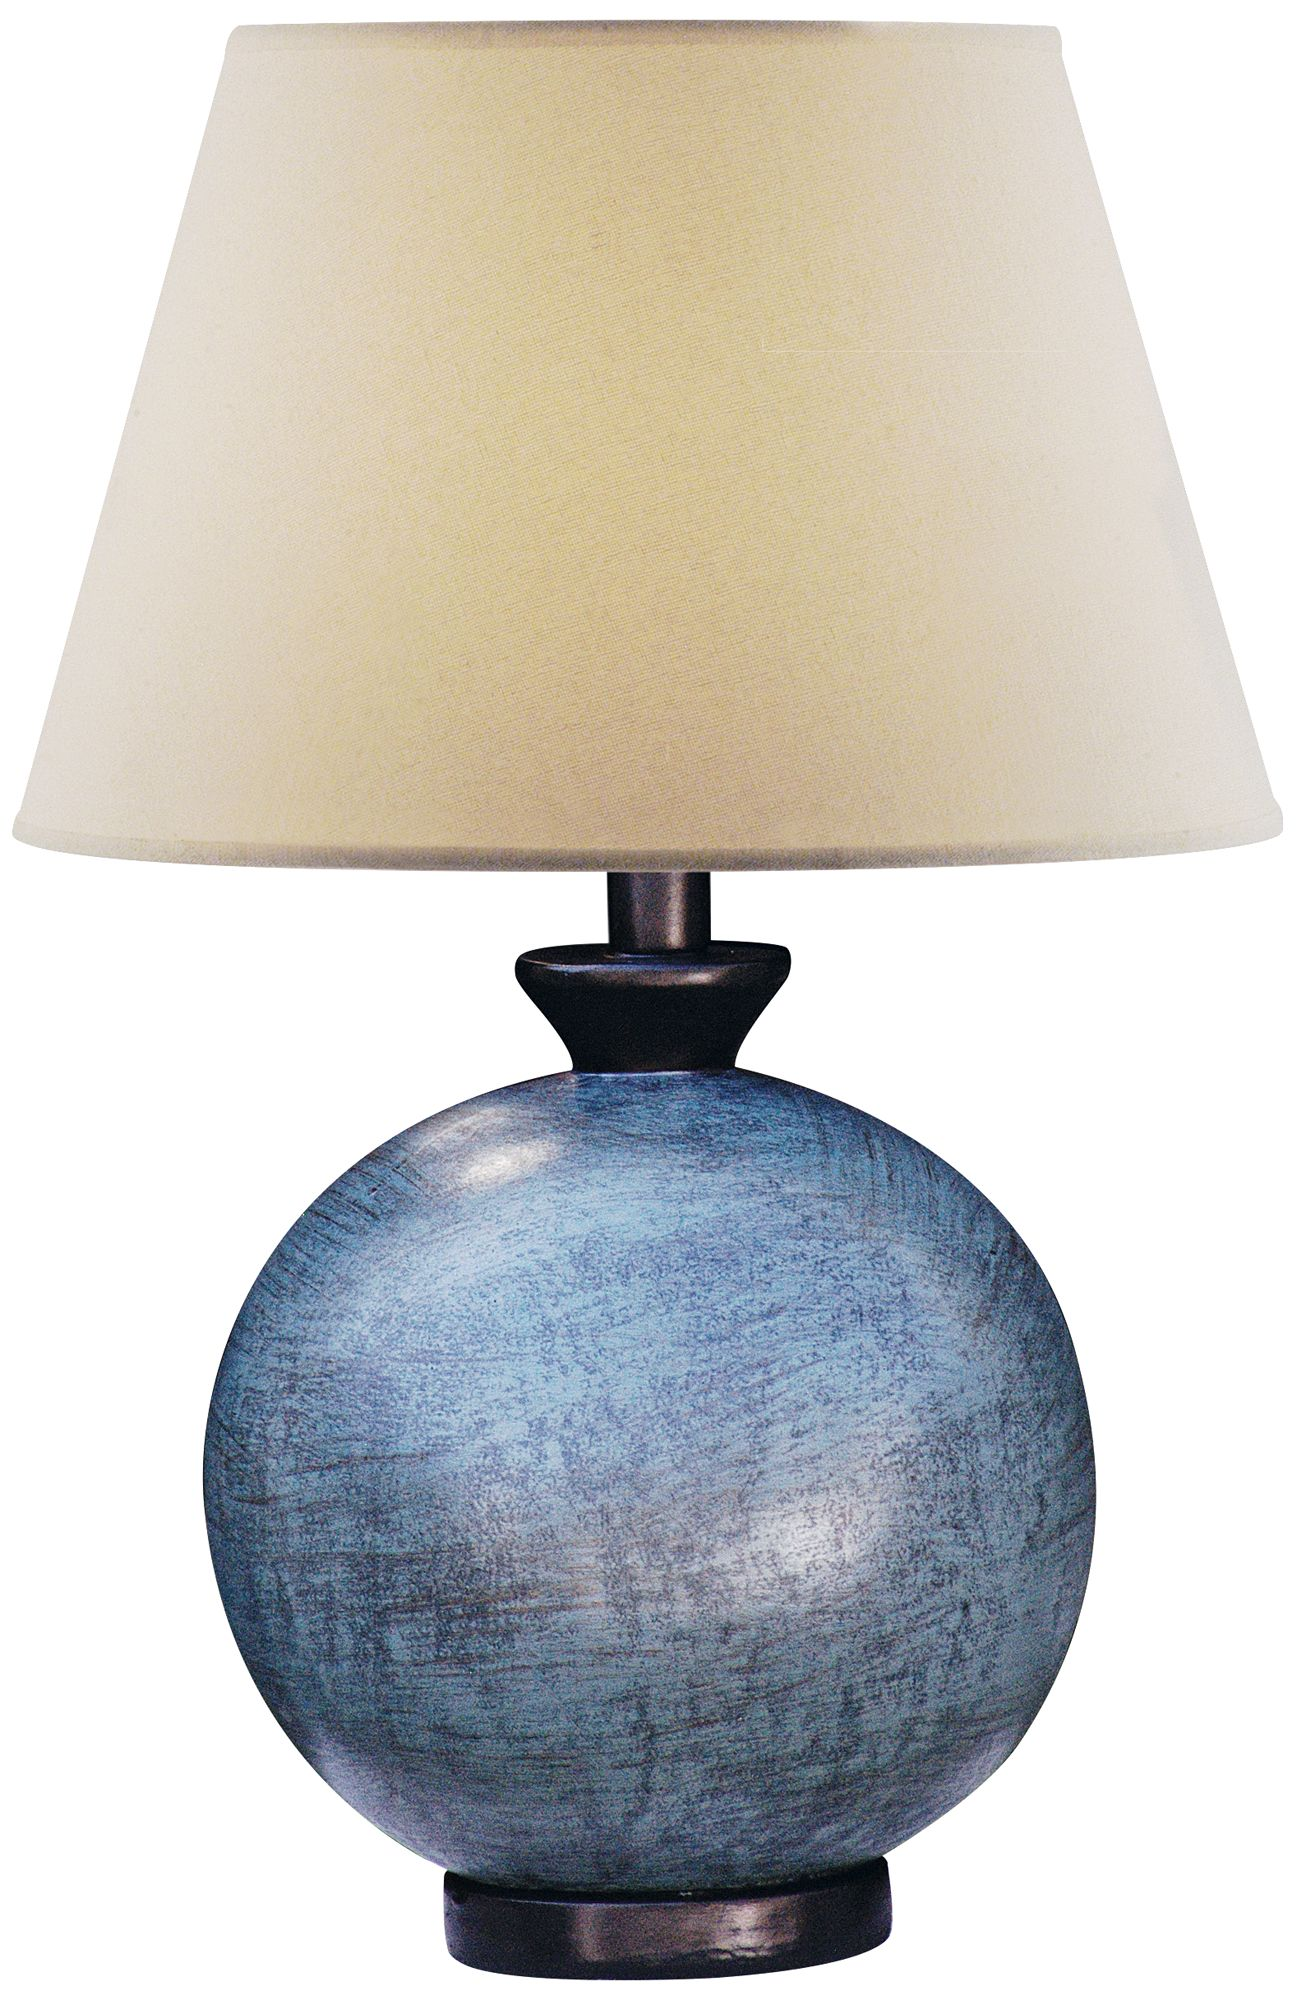 Good Pitkin Blue Round Table Lamp